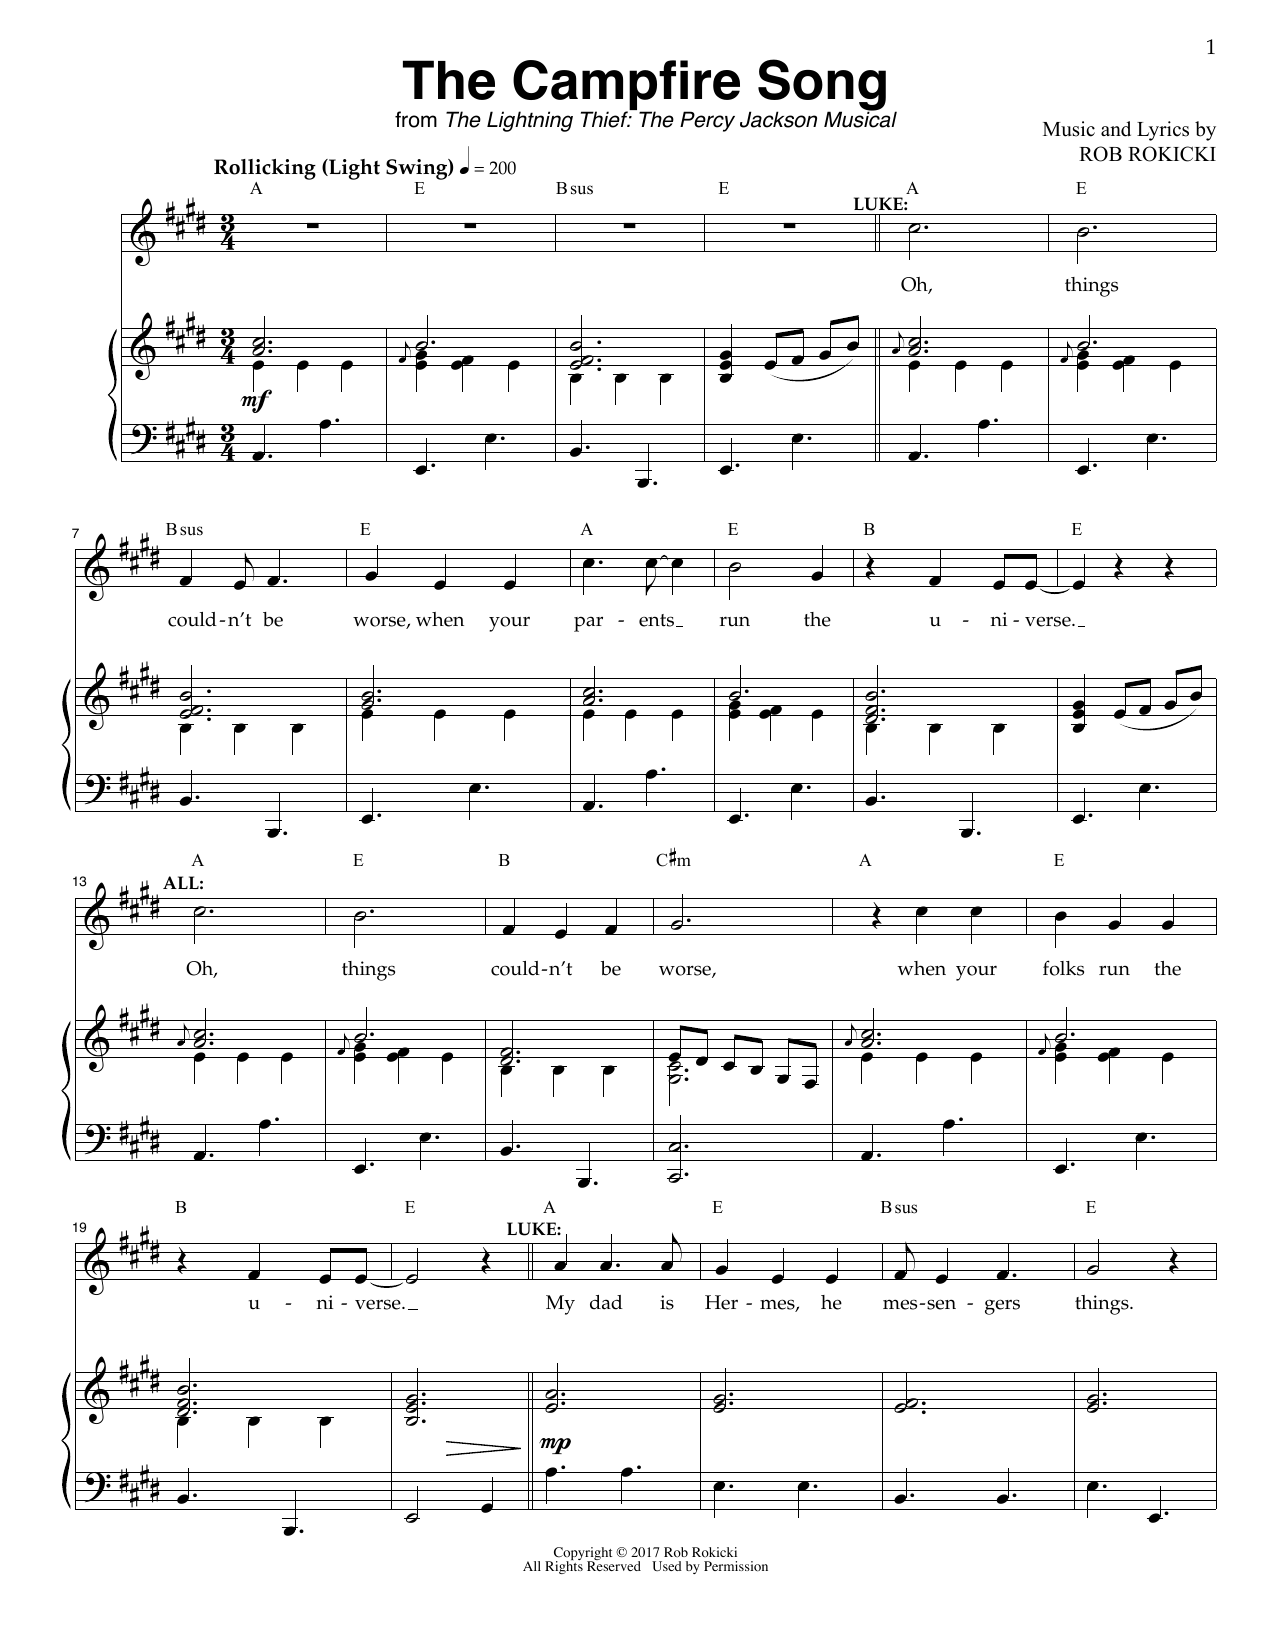 The Campfire Song (from The Lightning Thief: The Percy Jackson Musical) by  Rob Rokicki Piano & Vocal Digital Sheet Music